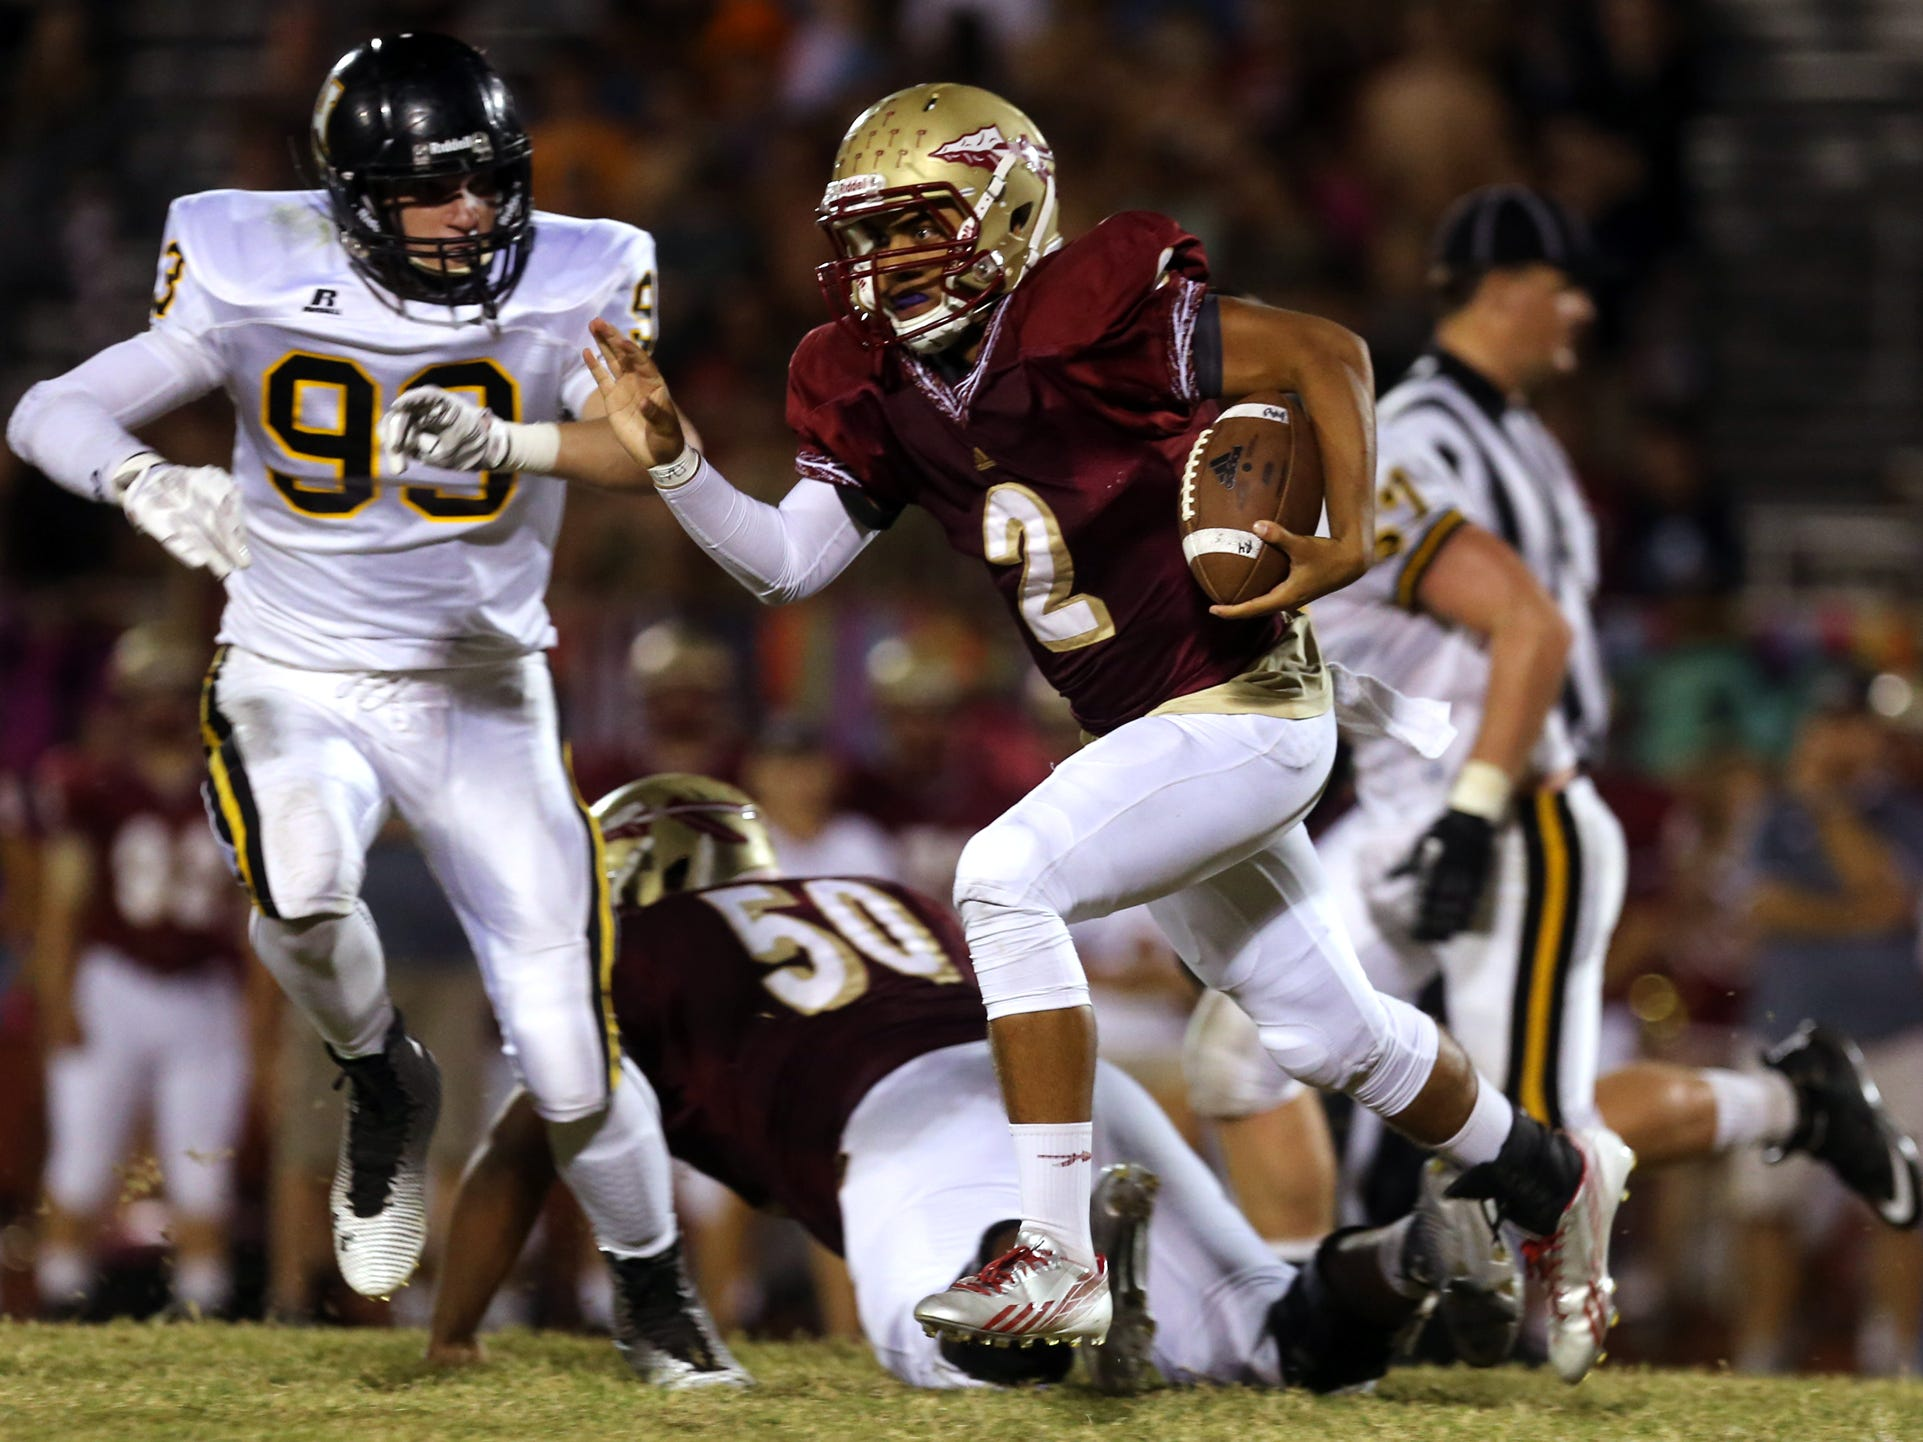 Riverdale quarterback Cortland Owens runs the ball against Hendersonville. Owens has led the Warriors' new no-huddle spread offense this season.